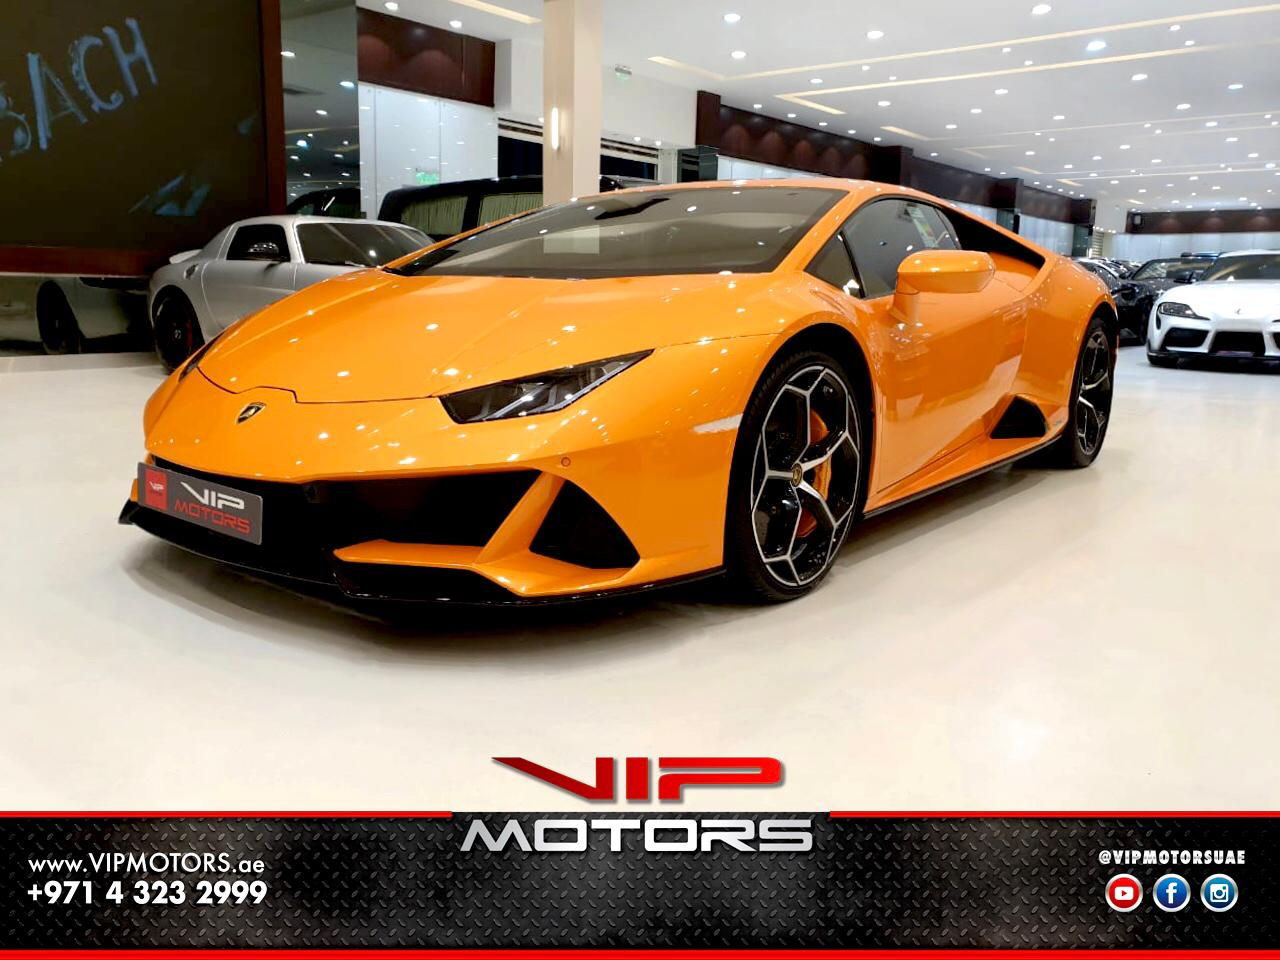 Lamborghini-Huracan-Evo-Orange-2020-Front-Side-View-Vip-Motors